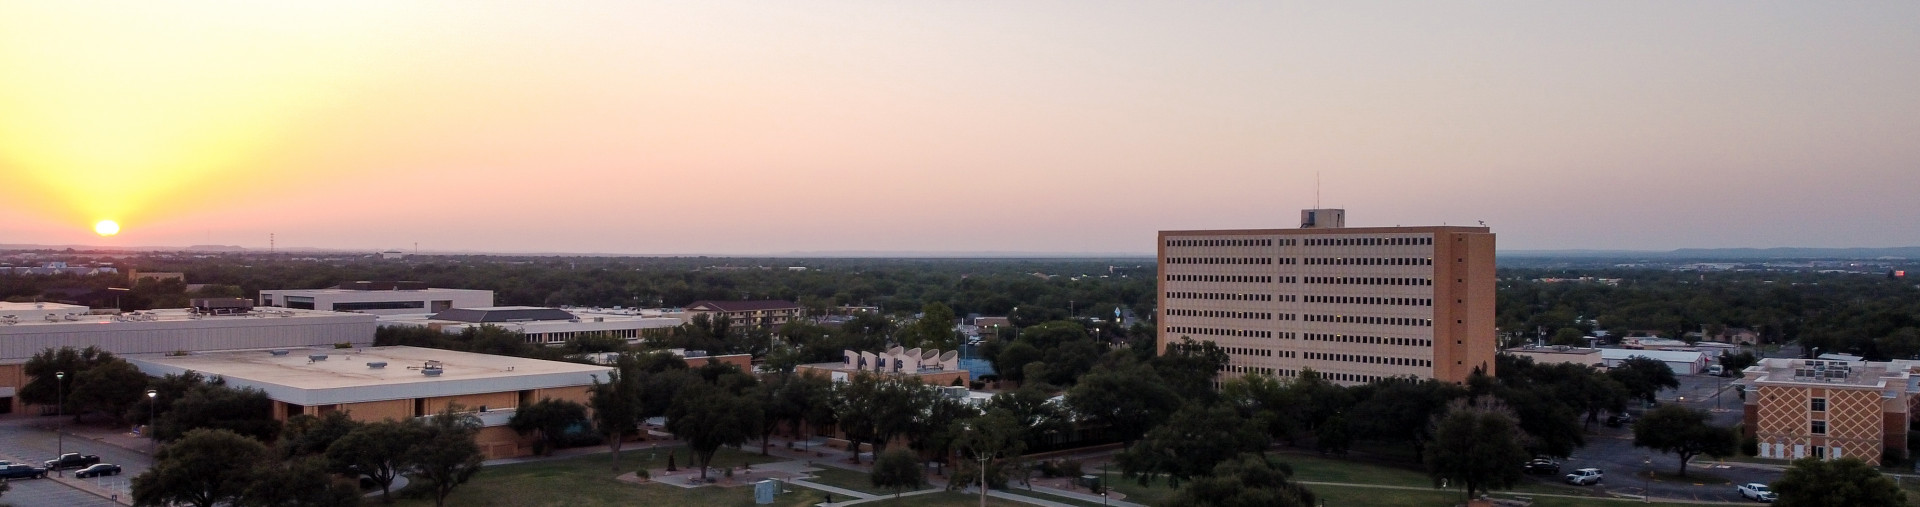 Aerial shot of Concho and Plaza Verde resident halls at dusk